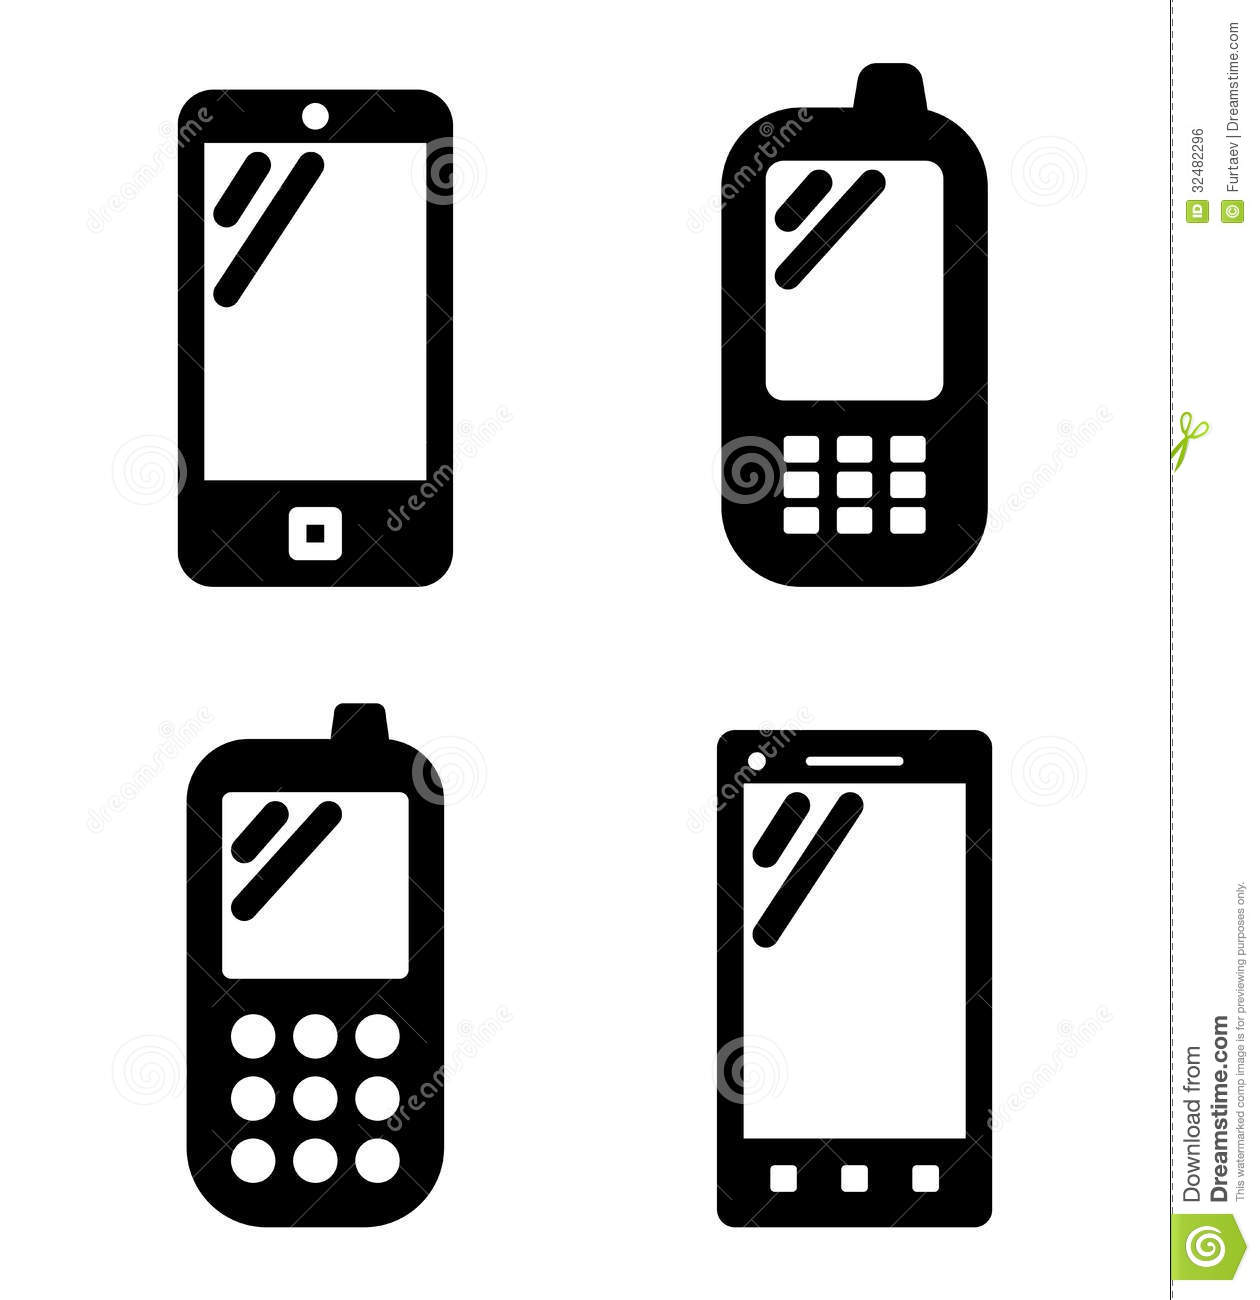 Cell Phone Signs Royalty Free Stock Image - Image: 32482296